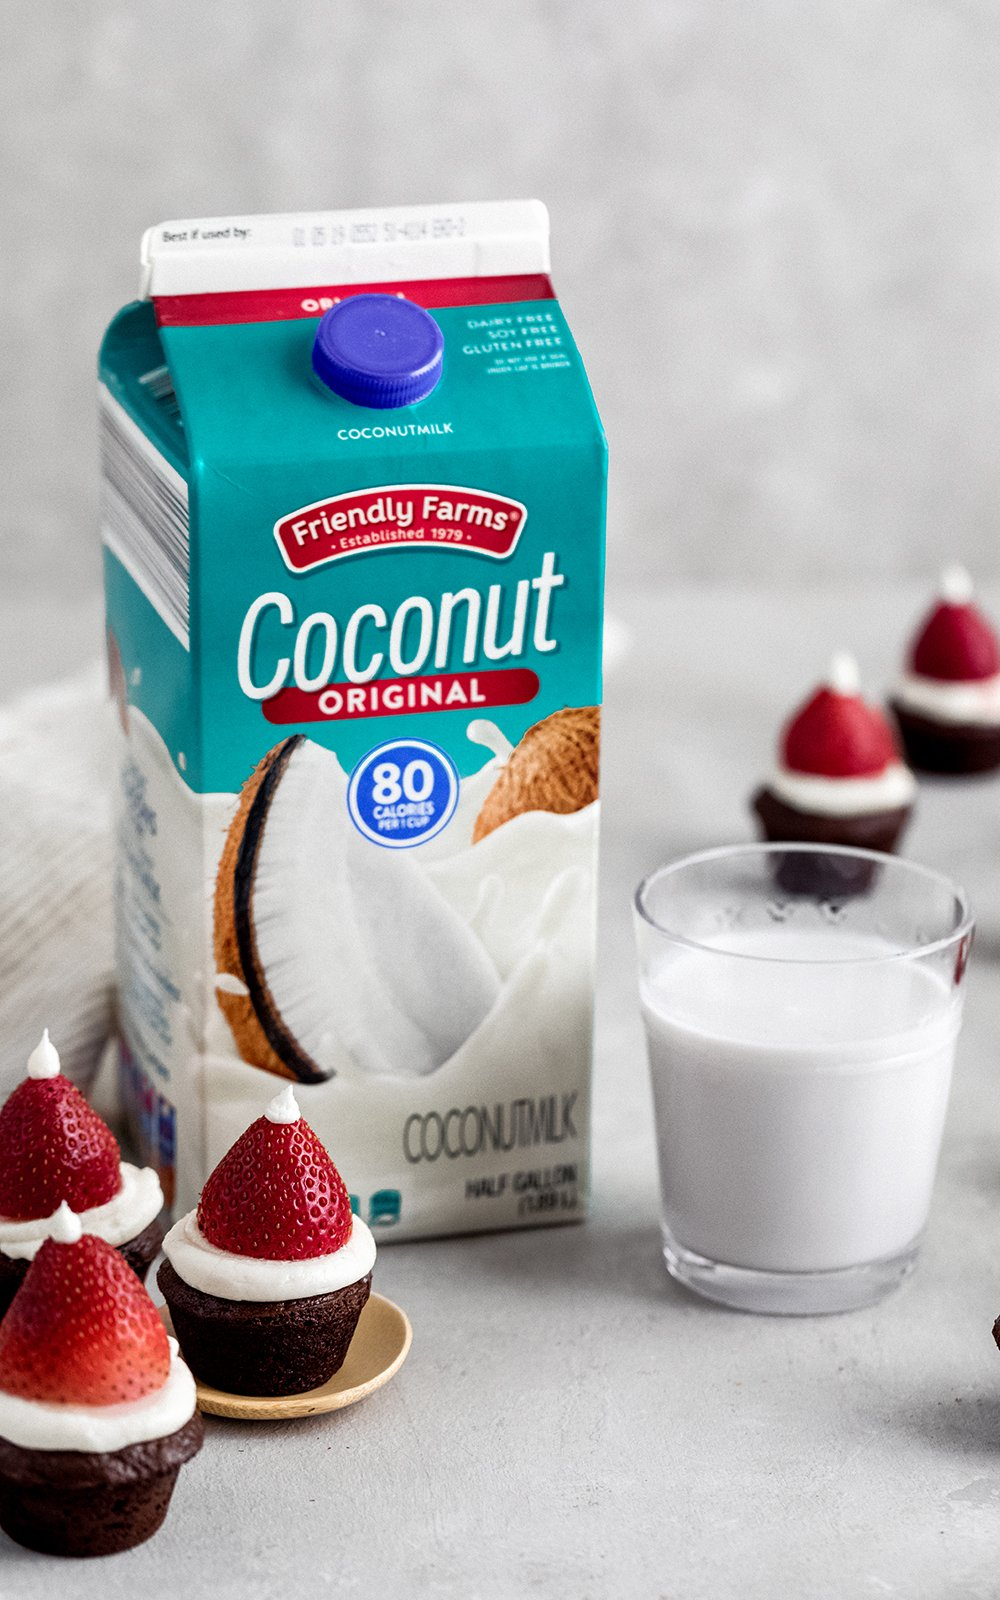 santa hat brownies next to a carton of coconut milk and a glass of coconut milk